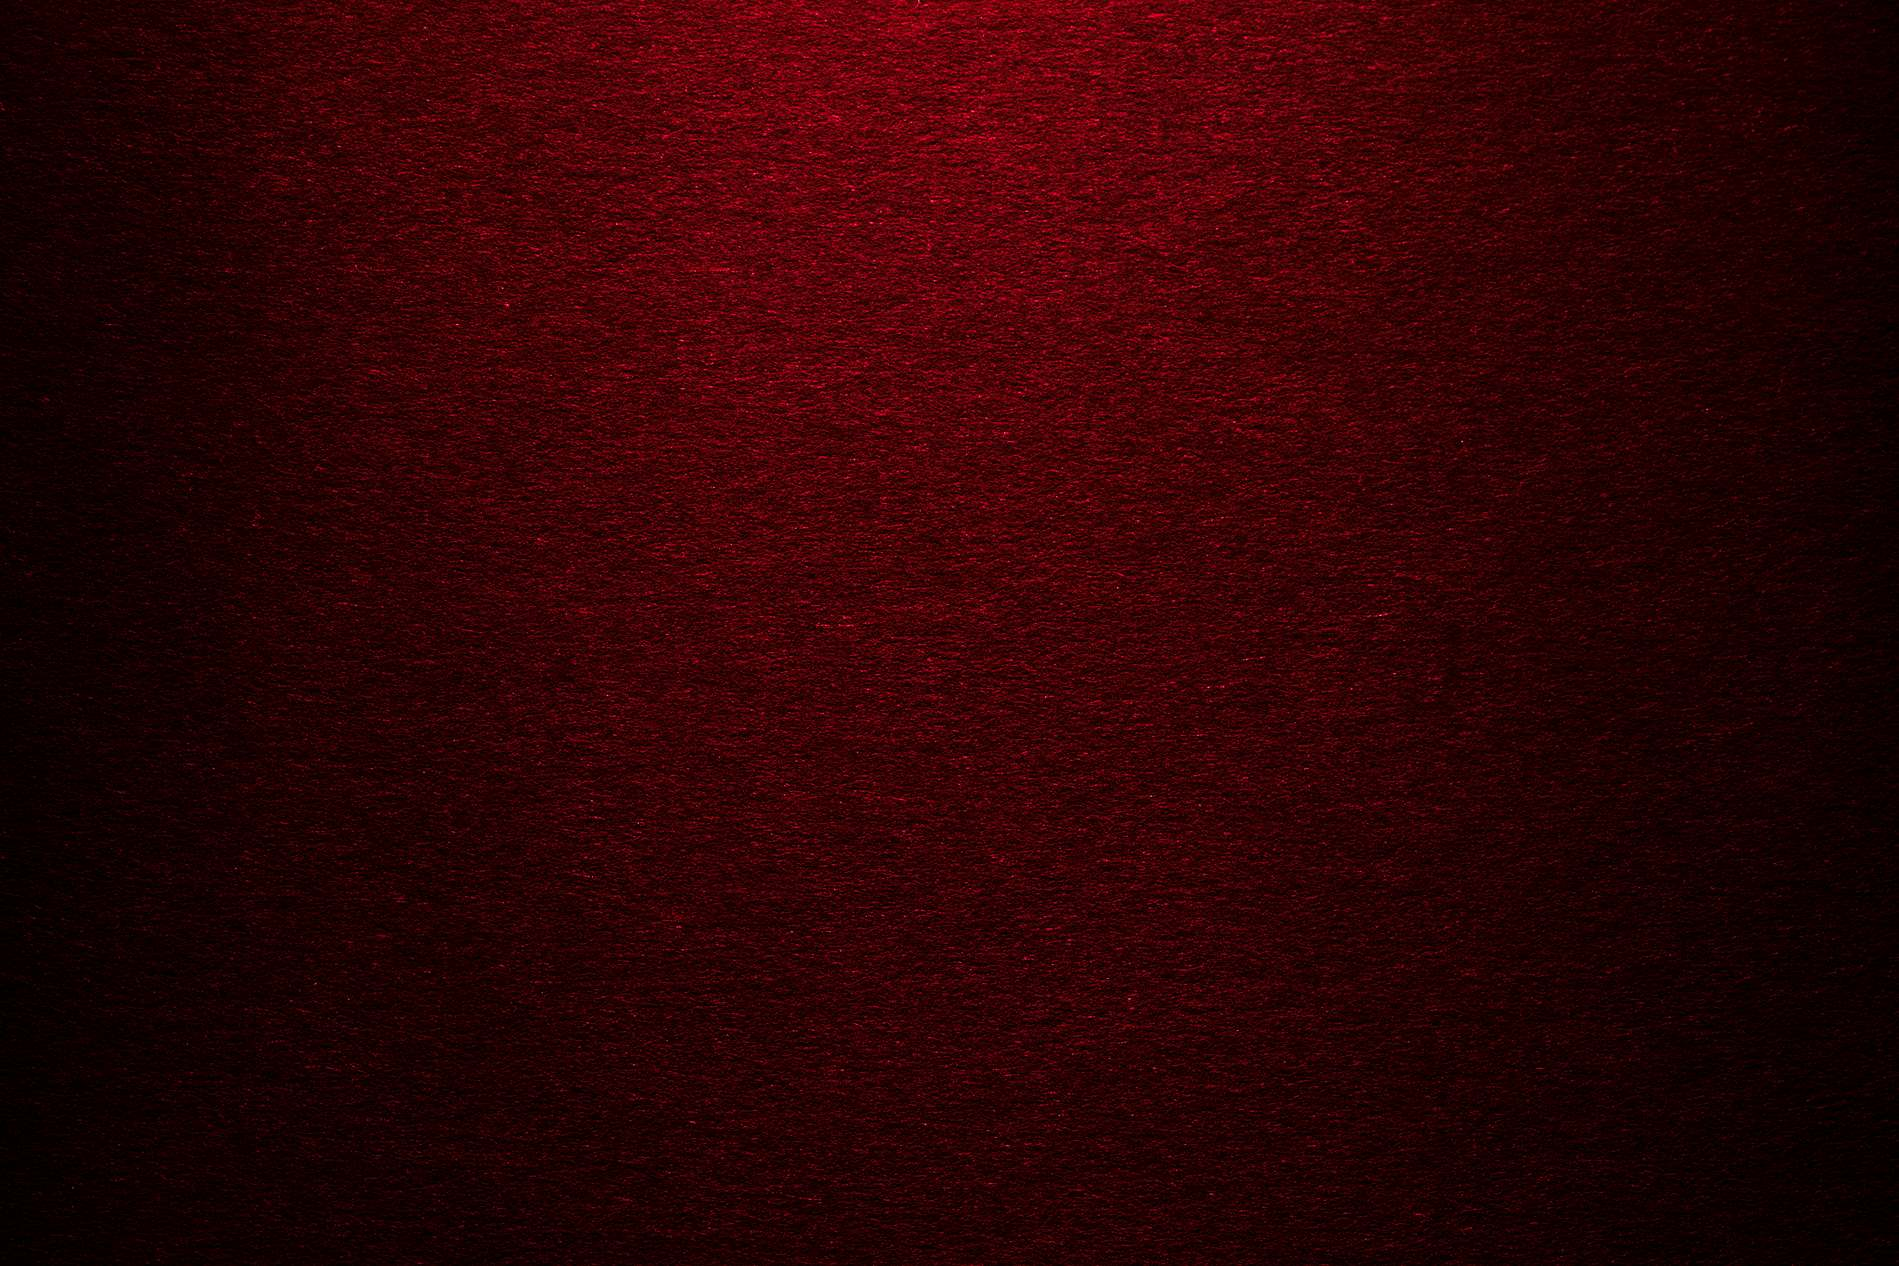 clean dark red texture background photohdx